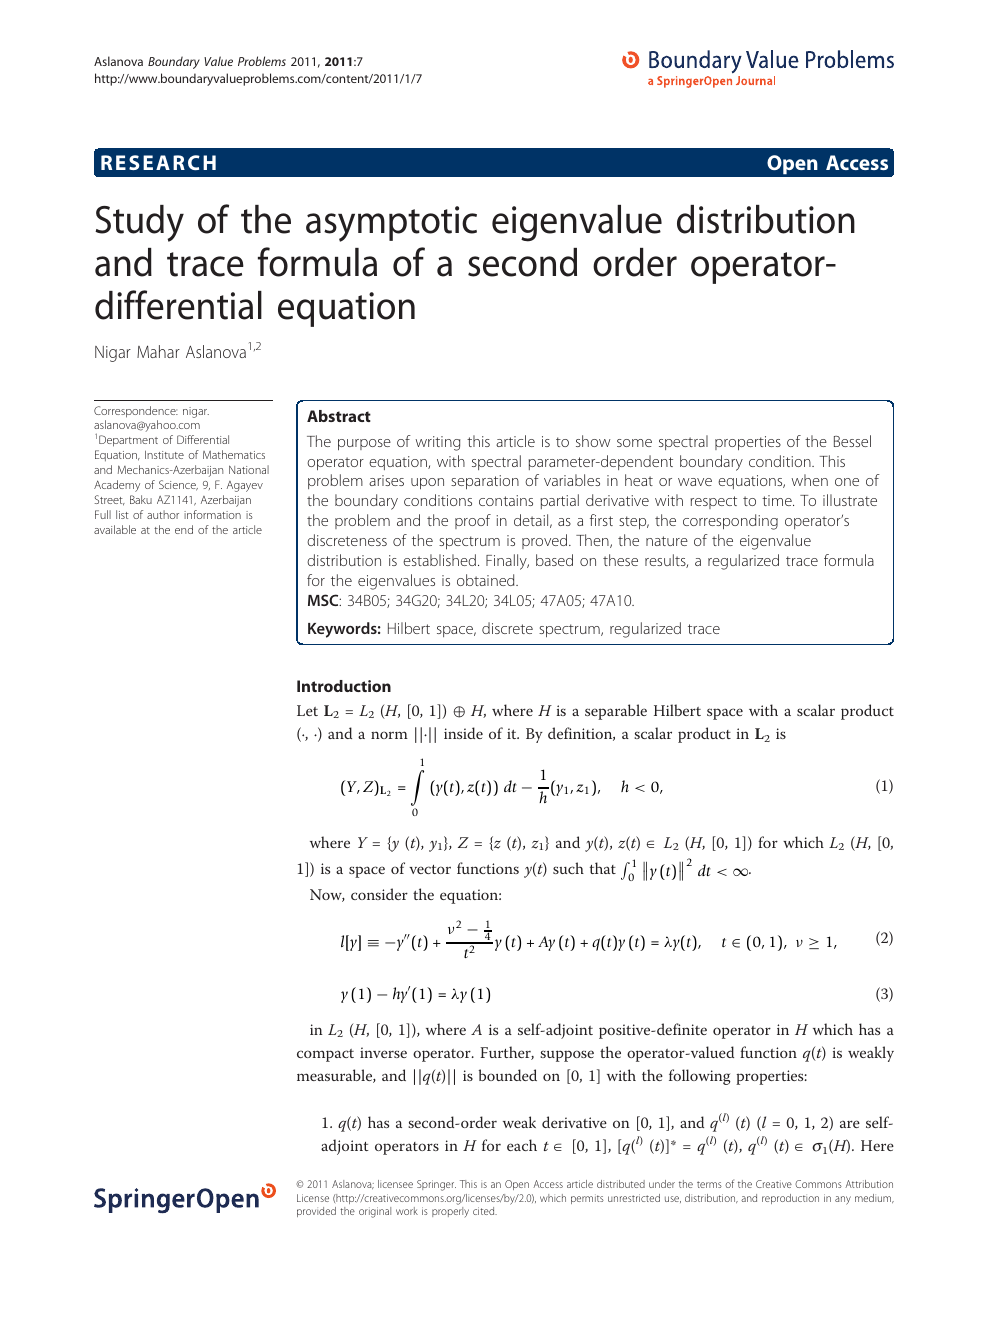 Study of the asymptotic eigenvalue distribution and trace